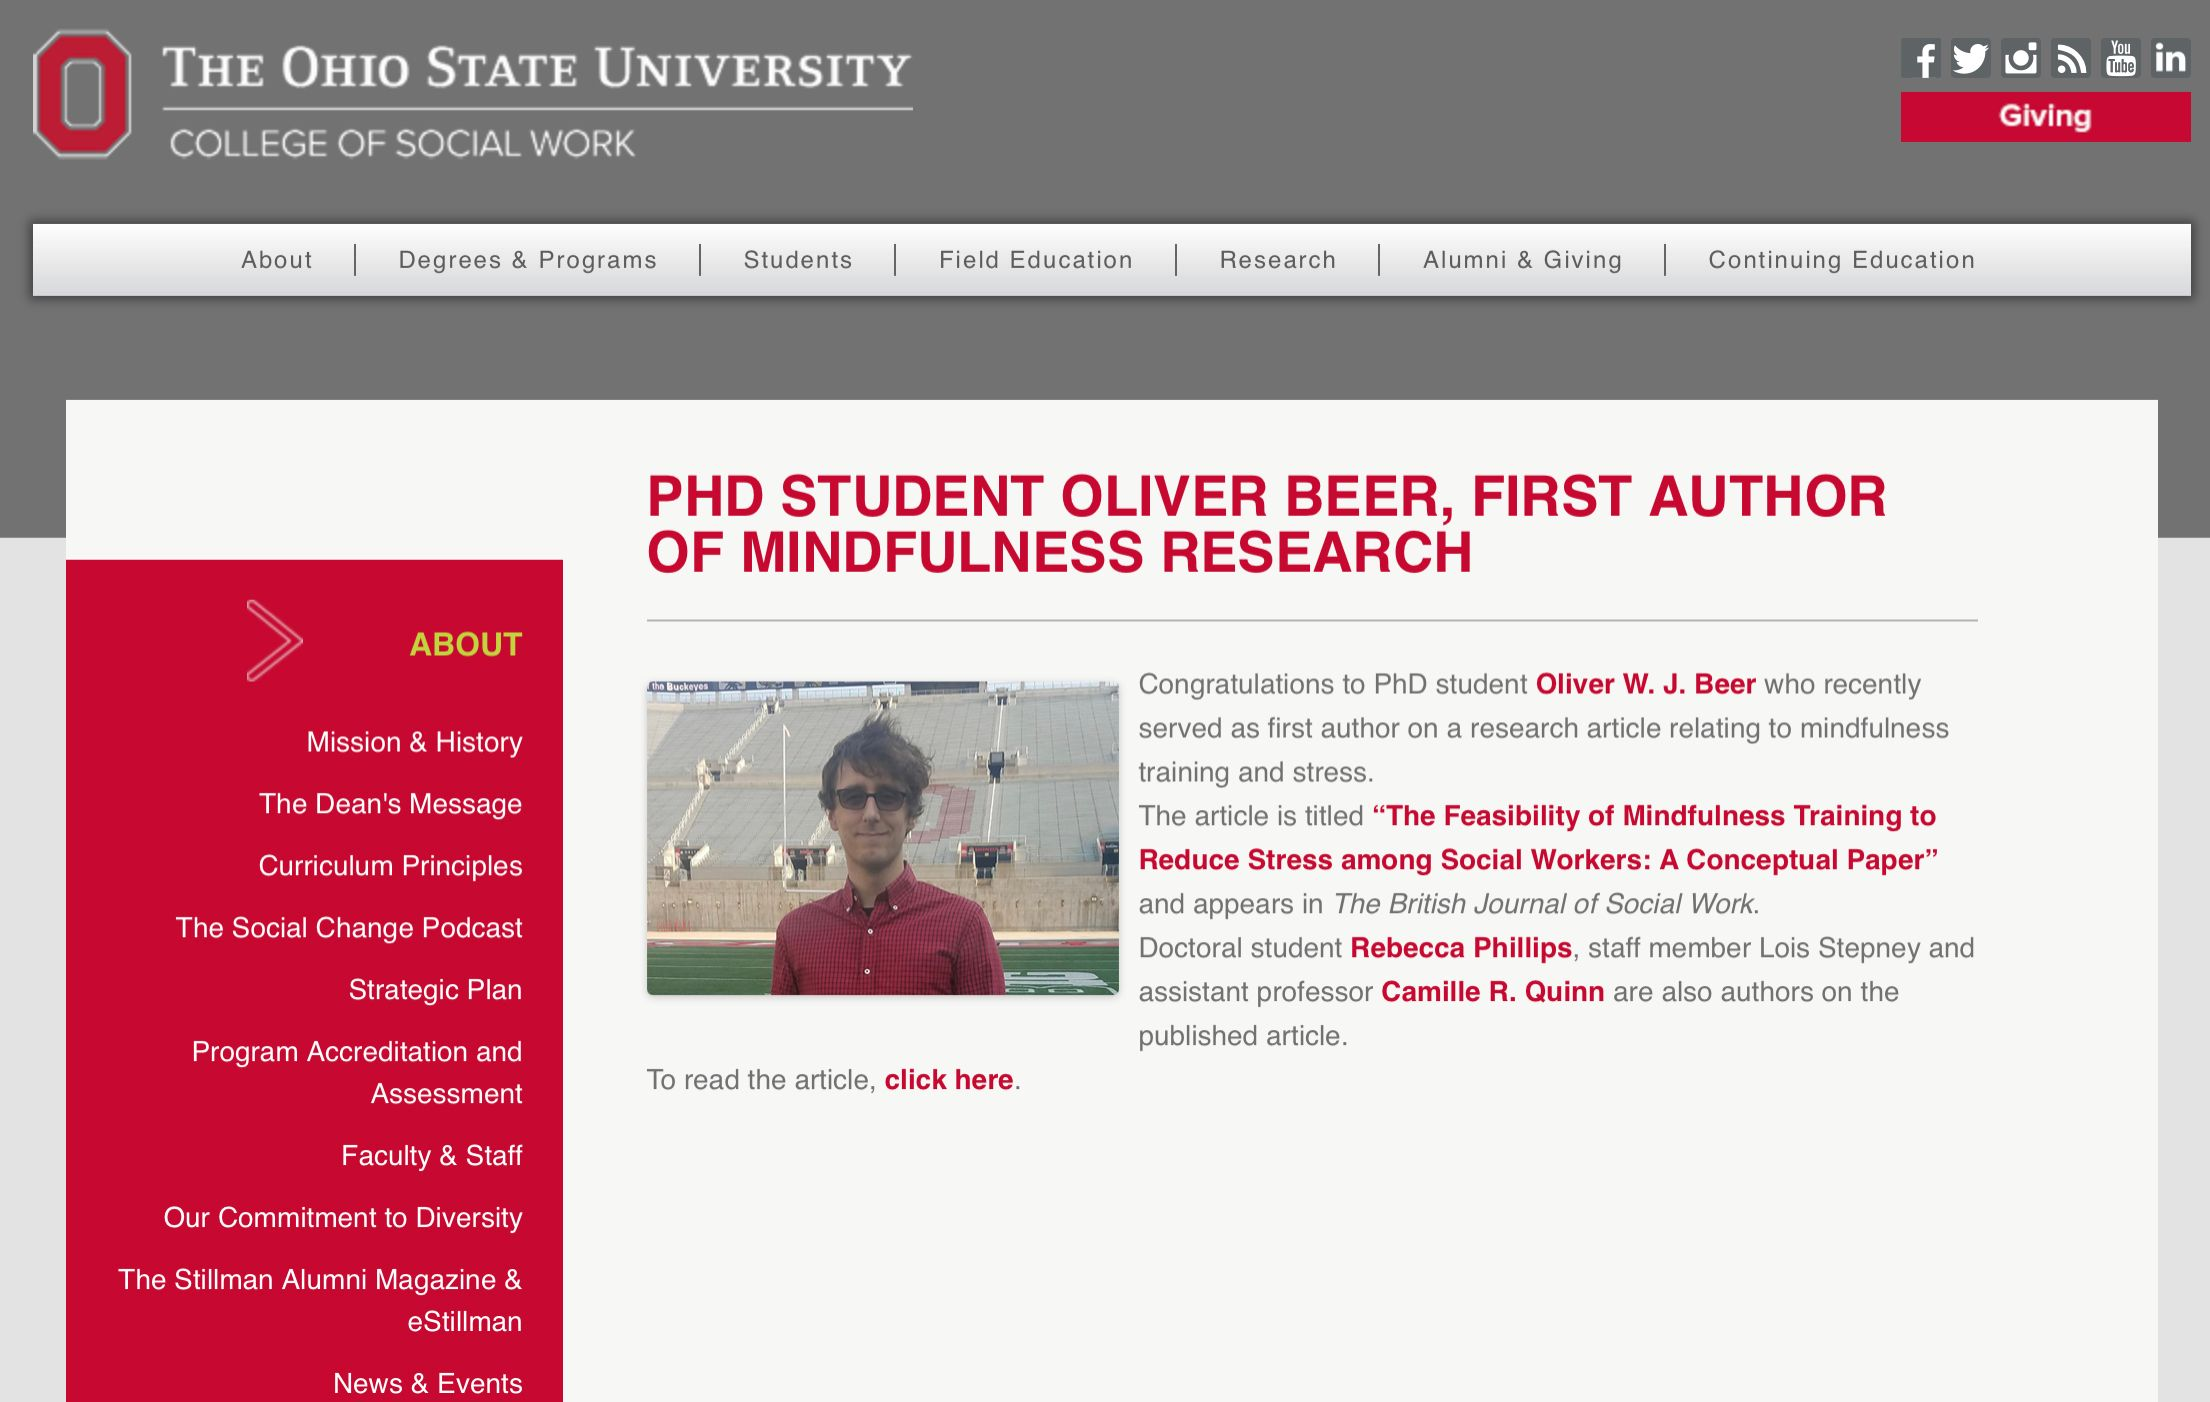 PhD Student Oliver Beer, First Author of Mindfulness Research